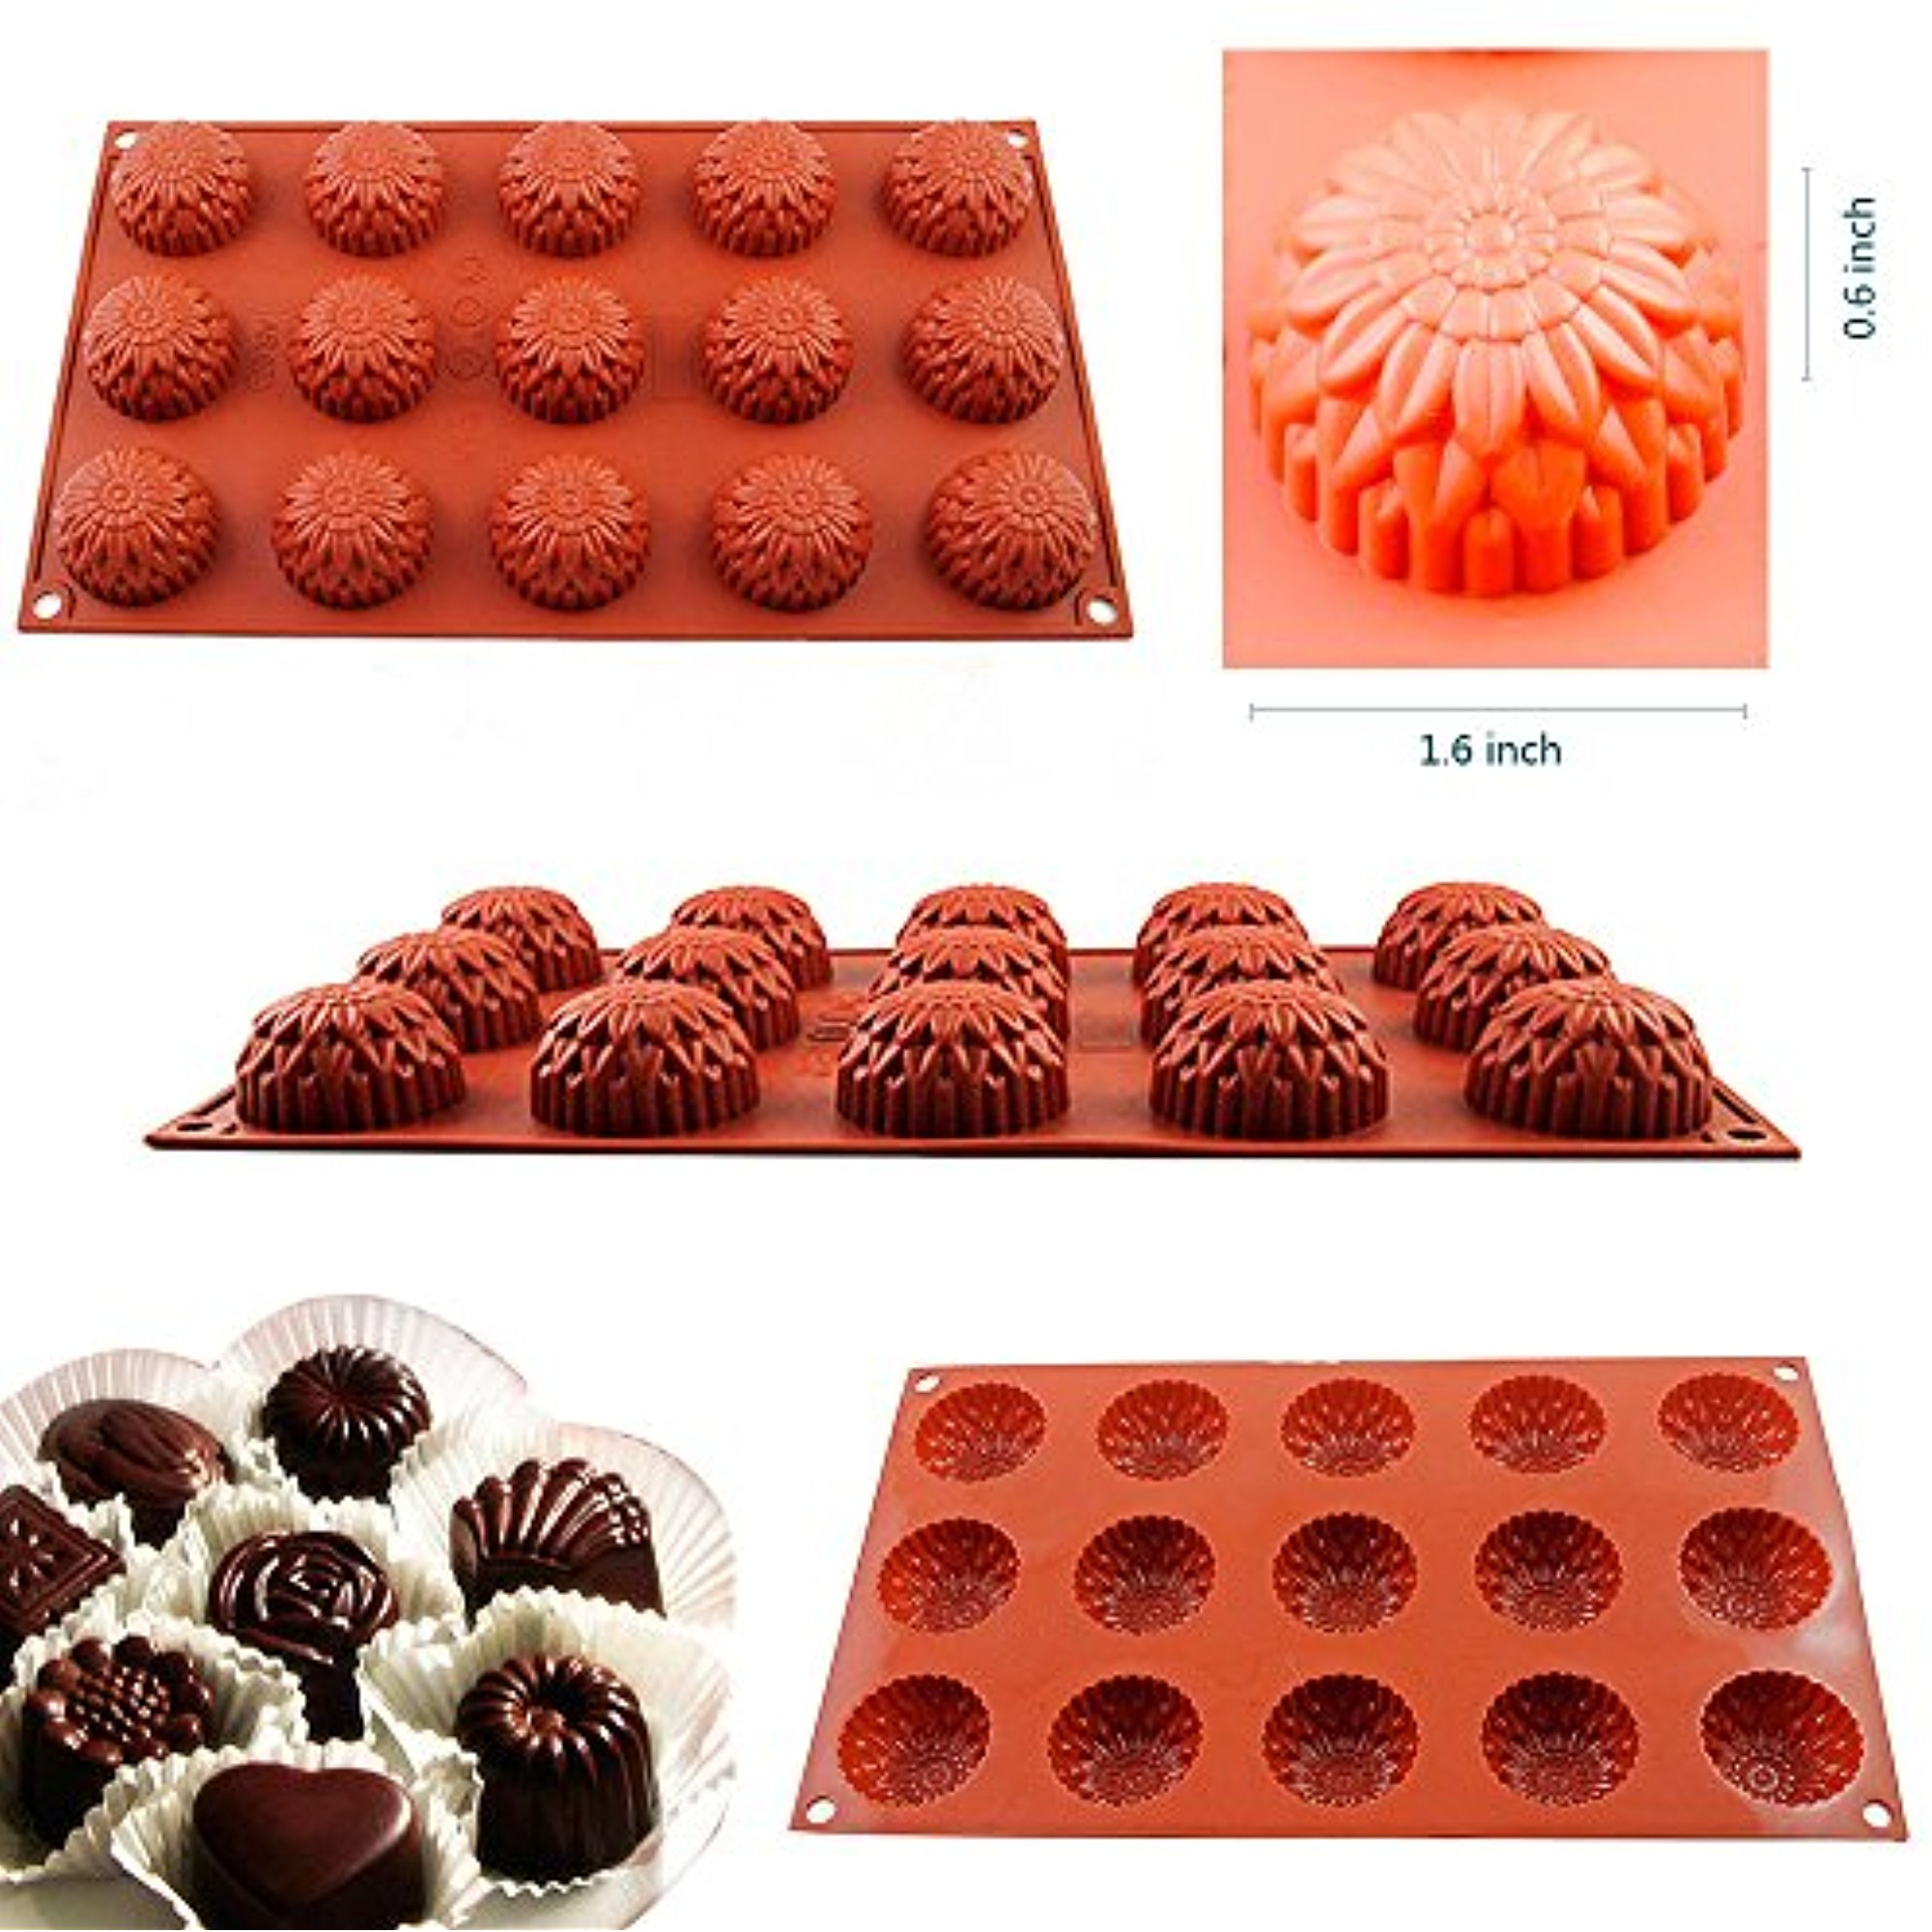 Click here to buy ICLOVER 15-Cavity Food Grade Silicone Non Stick Flowers Cake Bread Mold Chocolate Jelly Candy Baking Muffin Bakeware Mold, Ice Cube Tray DIY... by iClover.